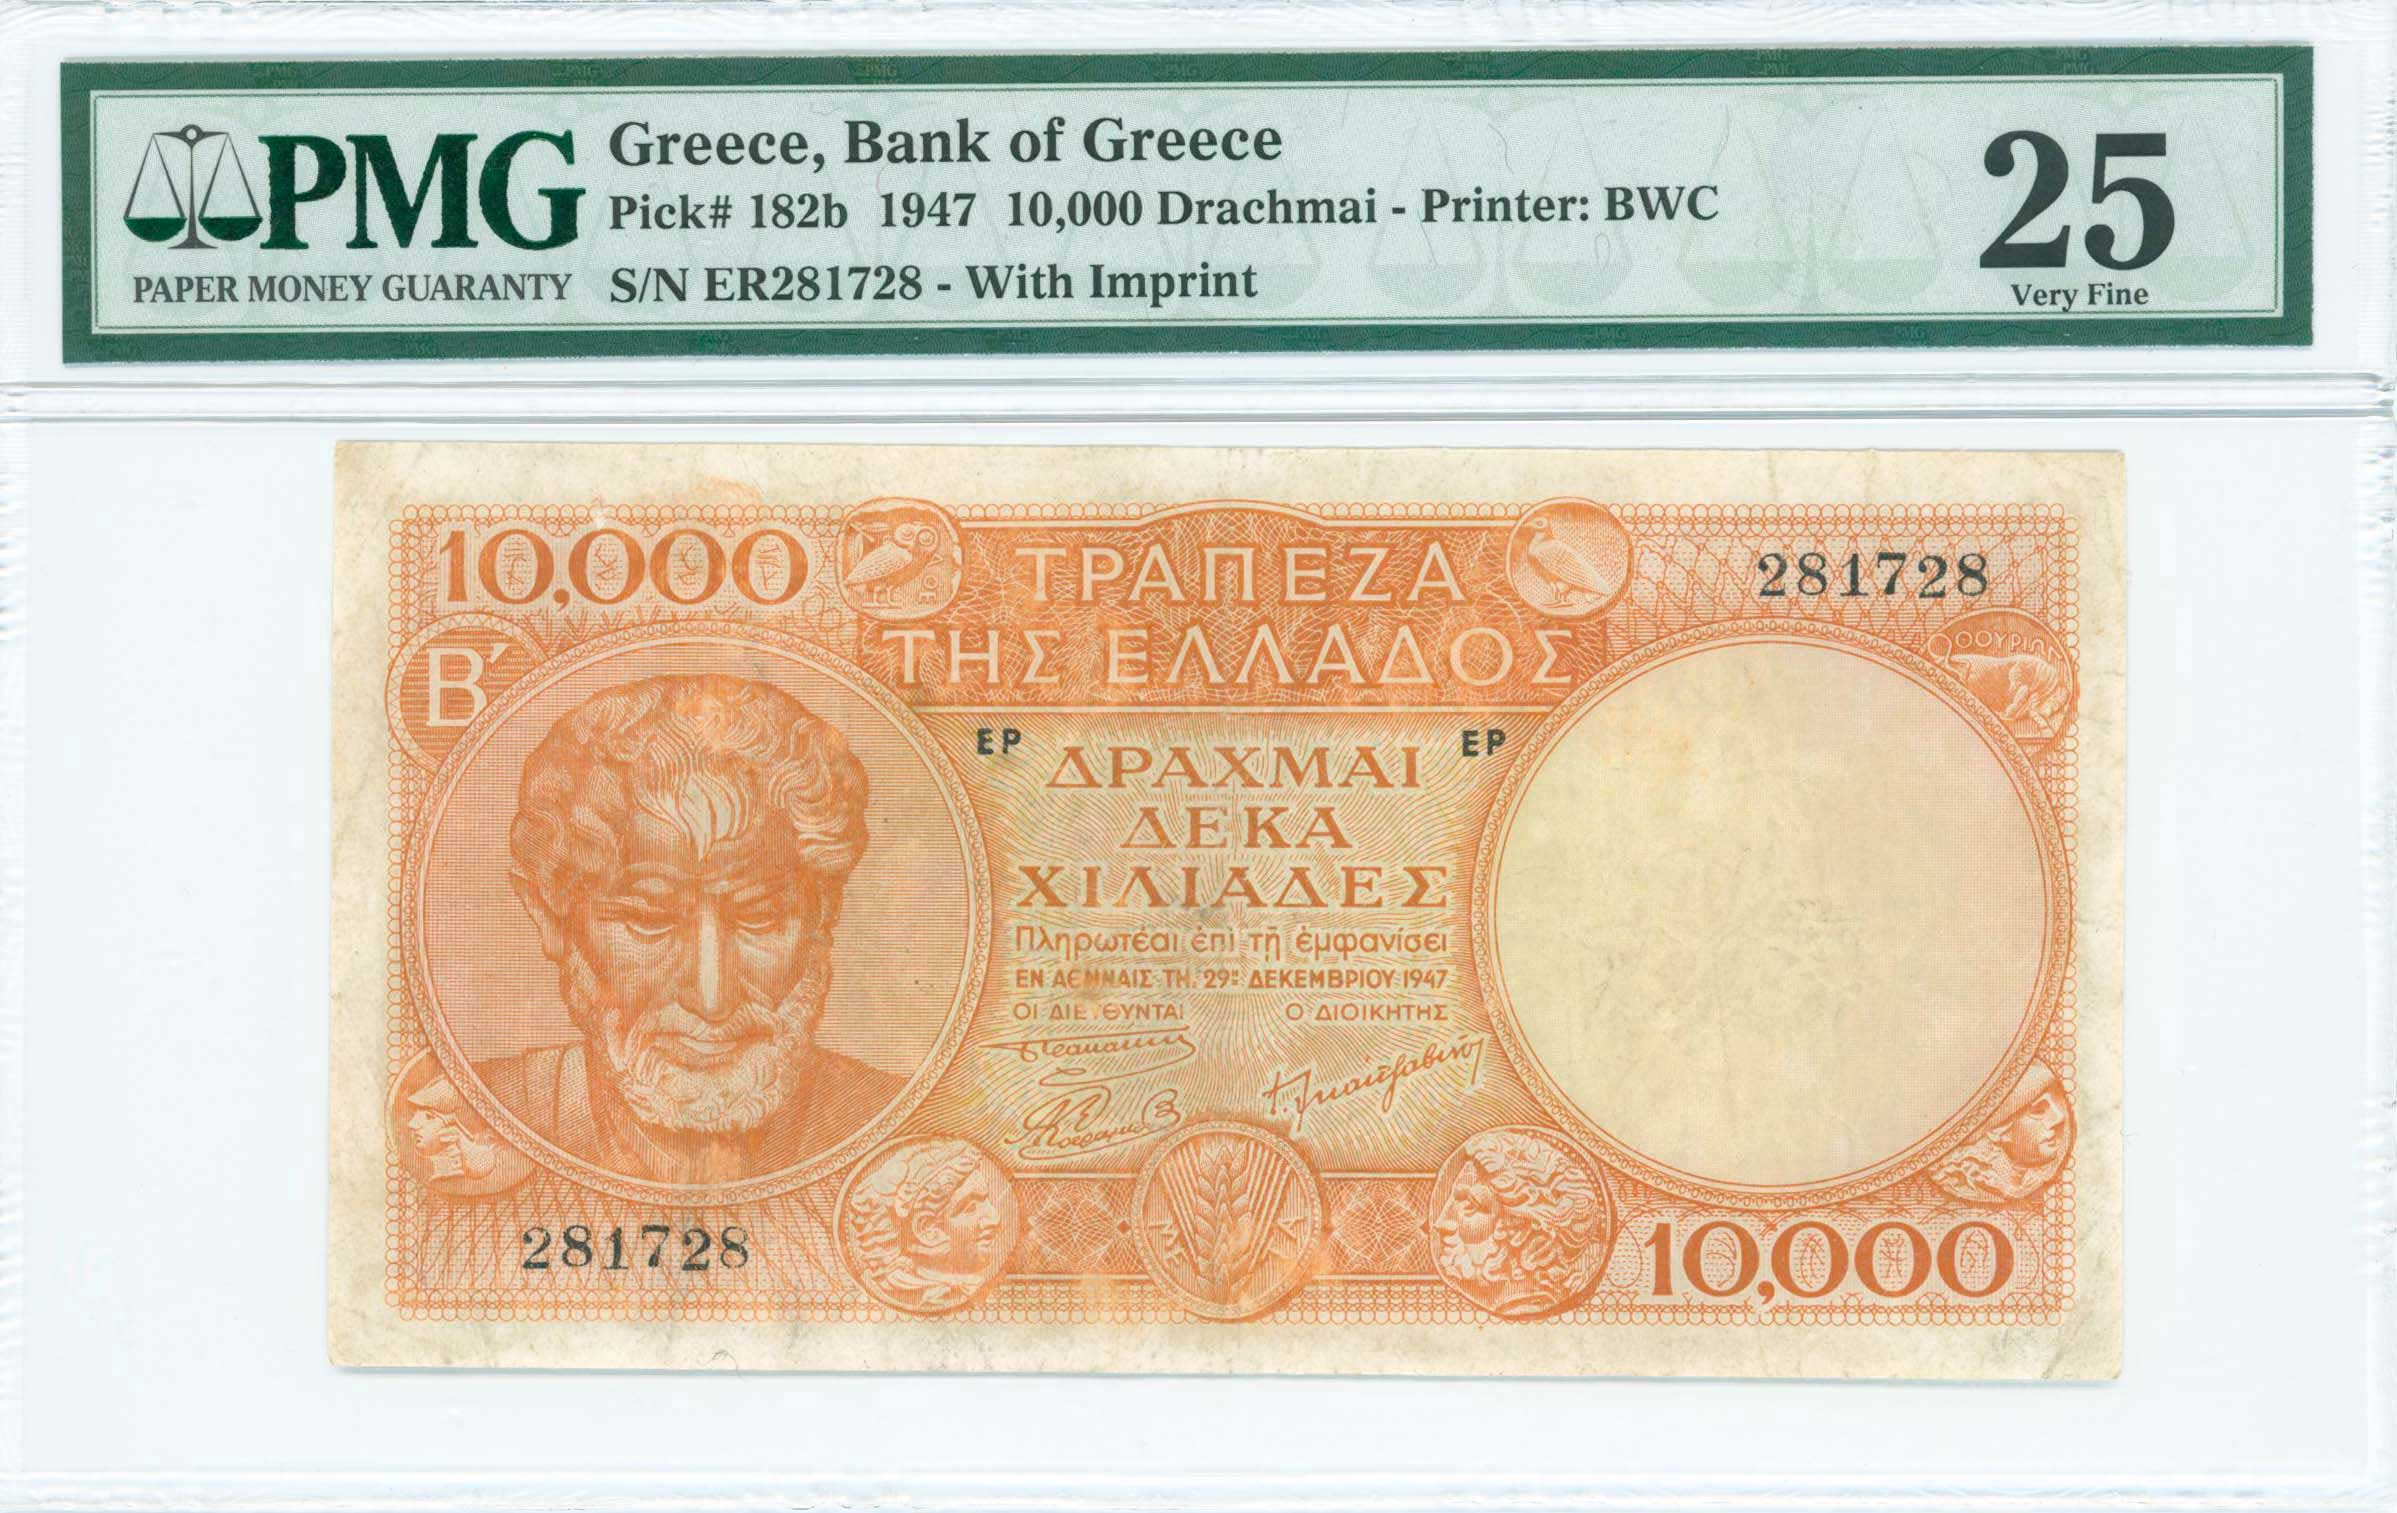 Lot 8486 - -  PAPER MONEY - BANKNOTES banknotes issued after wwii -  A. Karamitsos Public & Live Bid Auction 649 Coins, Medals & Banknotes